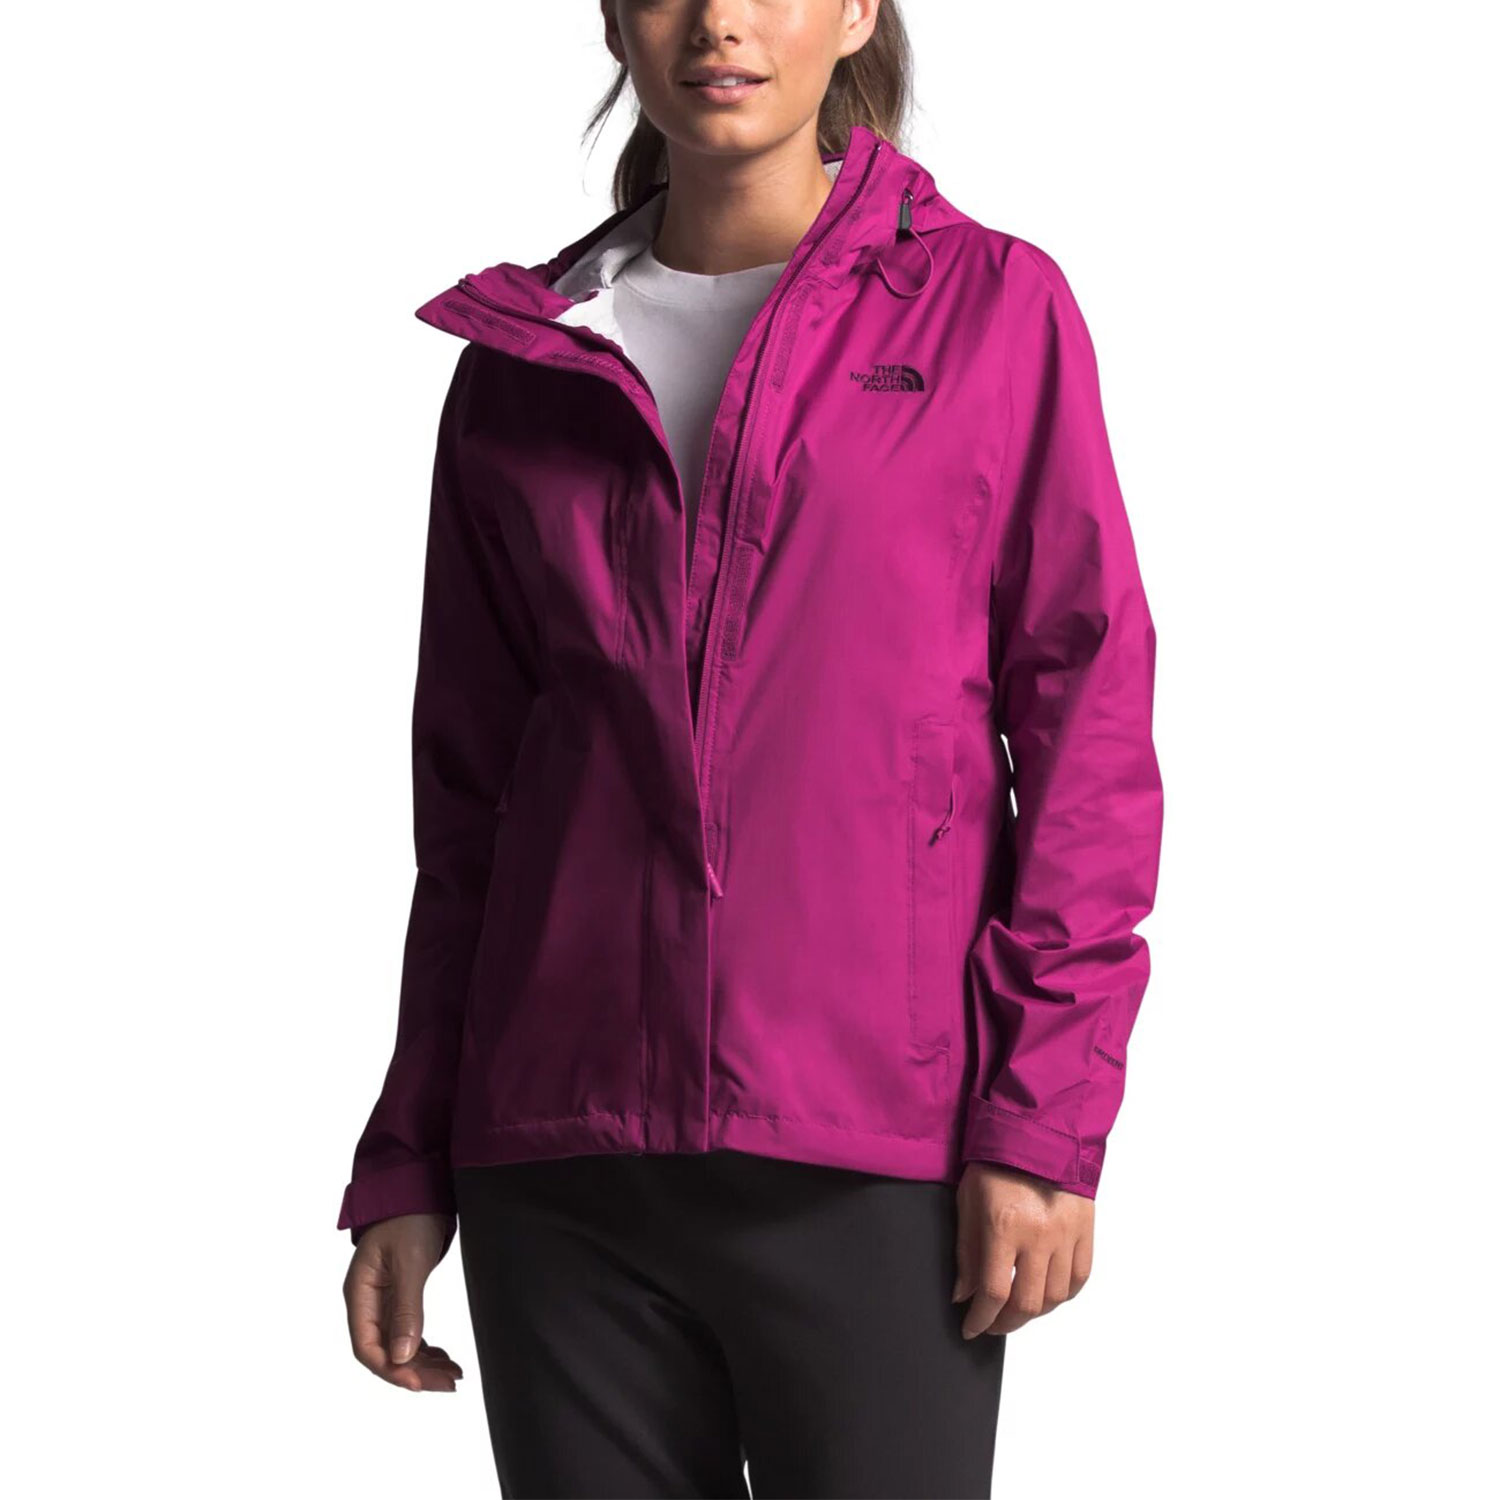 North Face Active Clothing